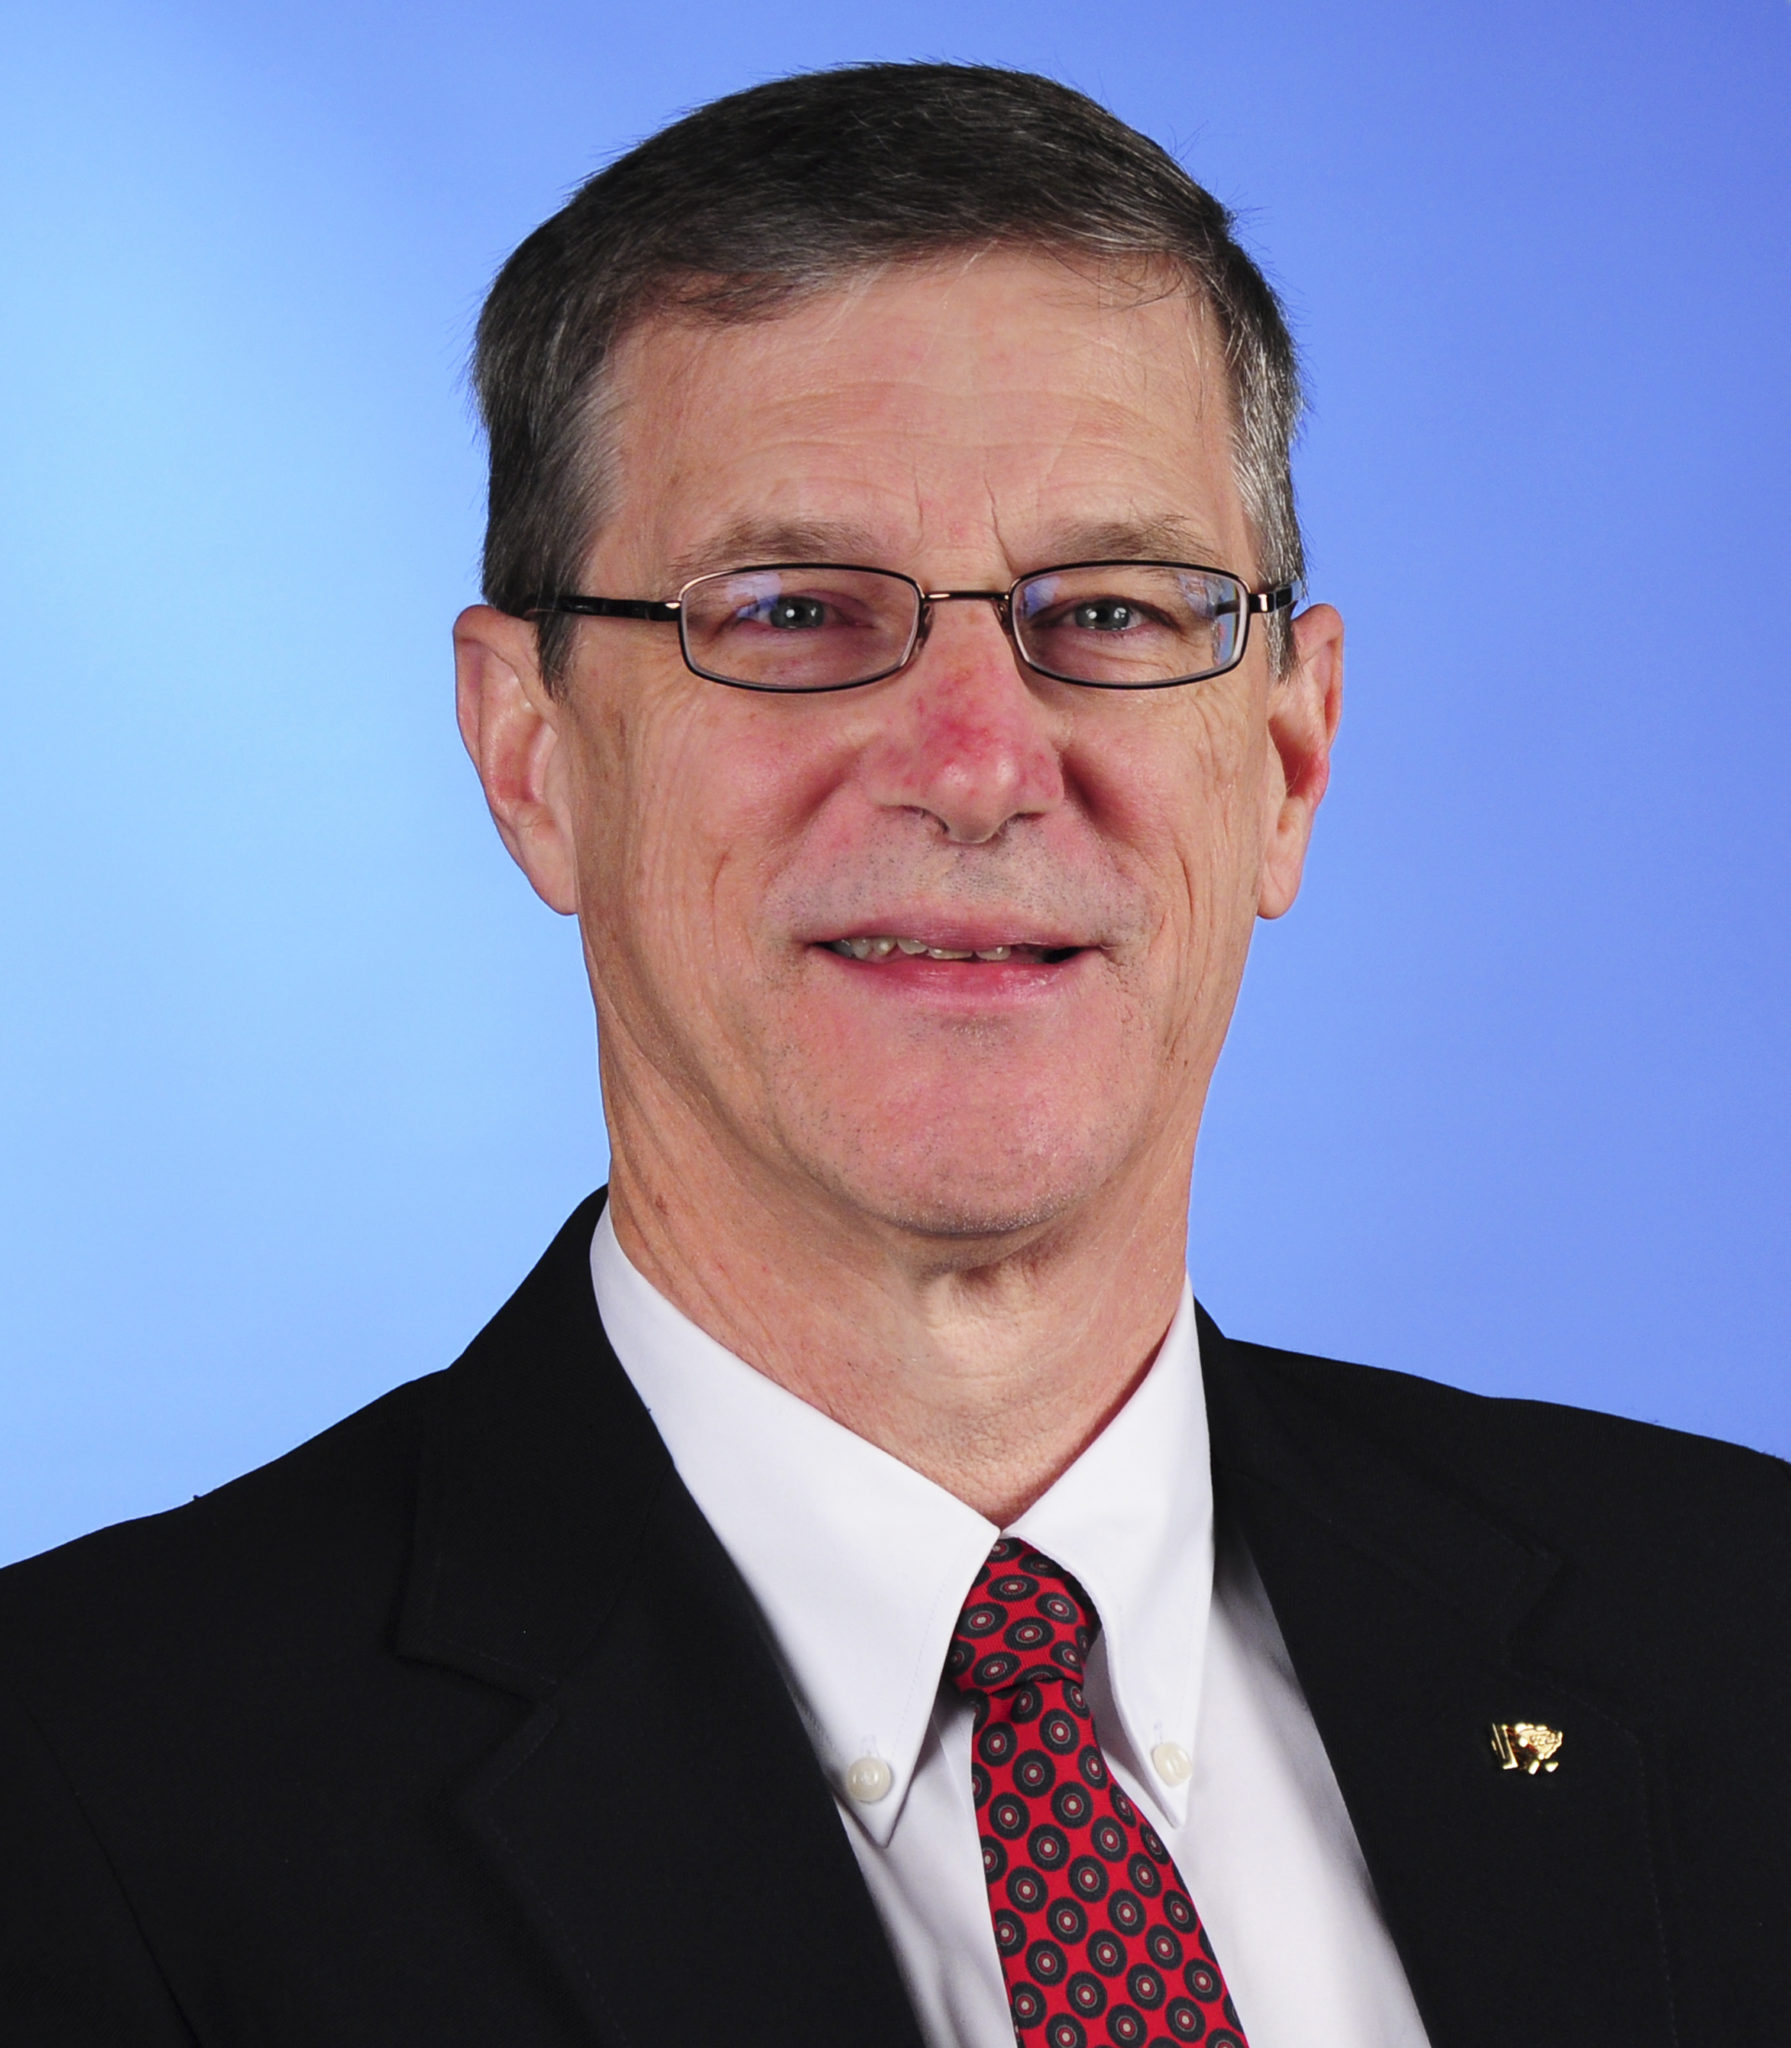 Ed Vess, R.Ph., Director of Pharmacy Professional Affairs for RedSail Technologies